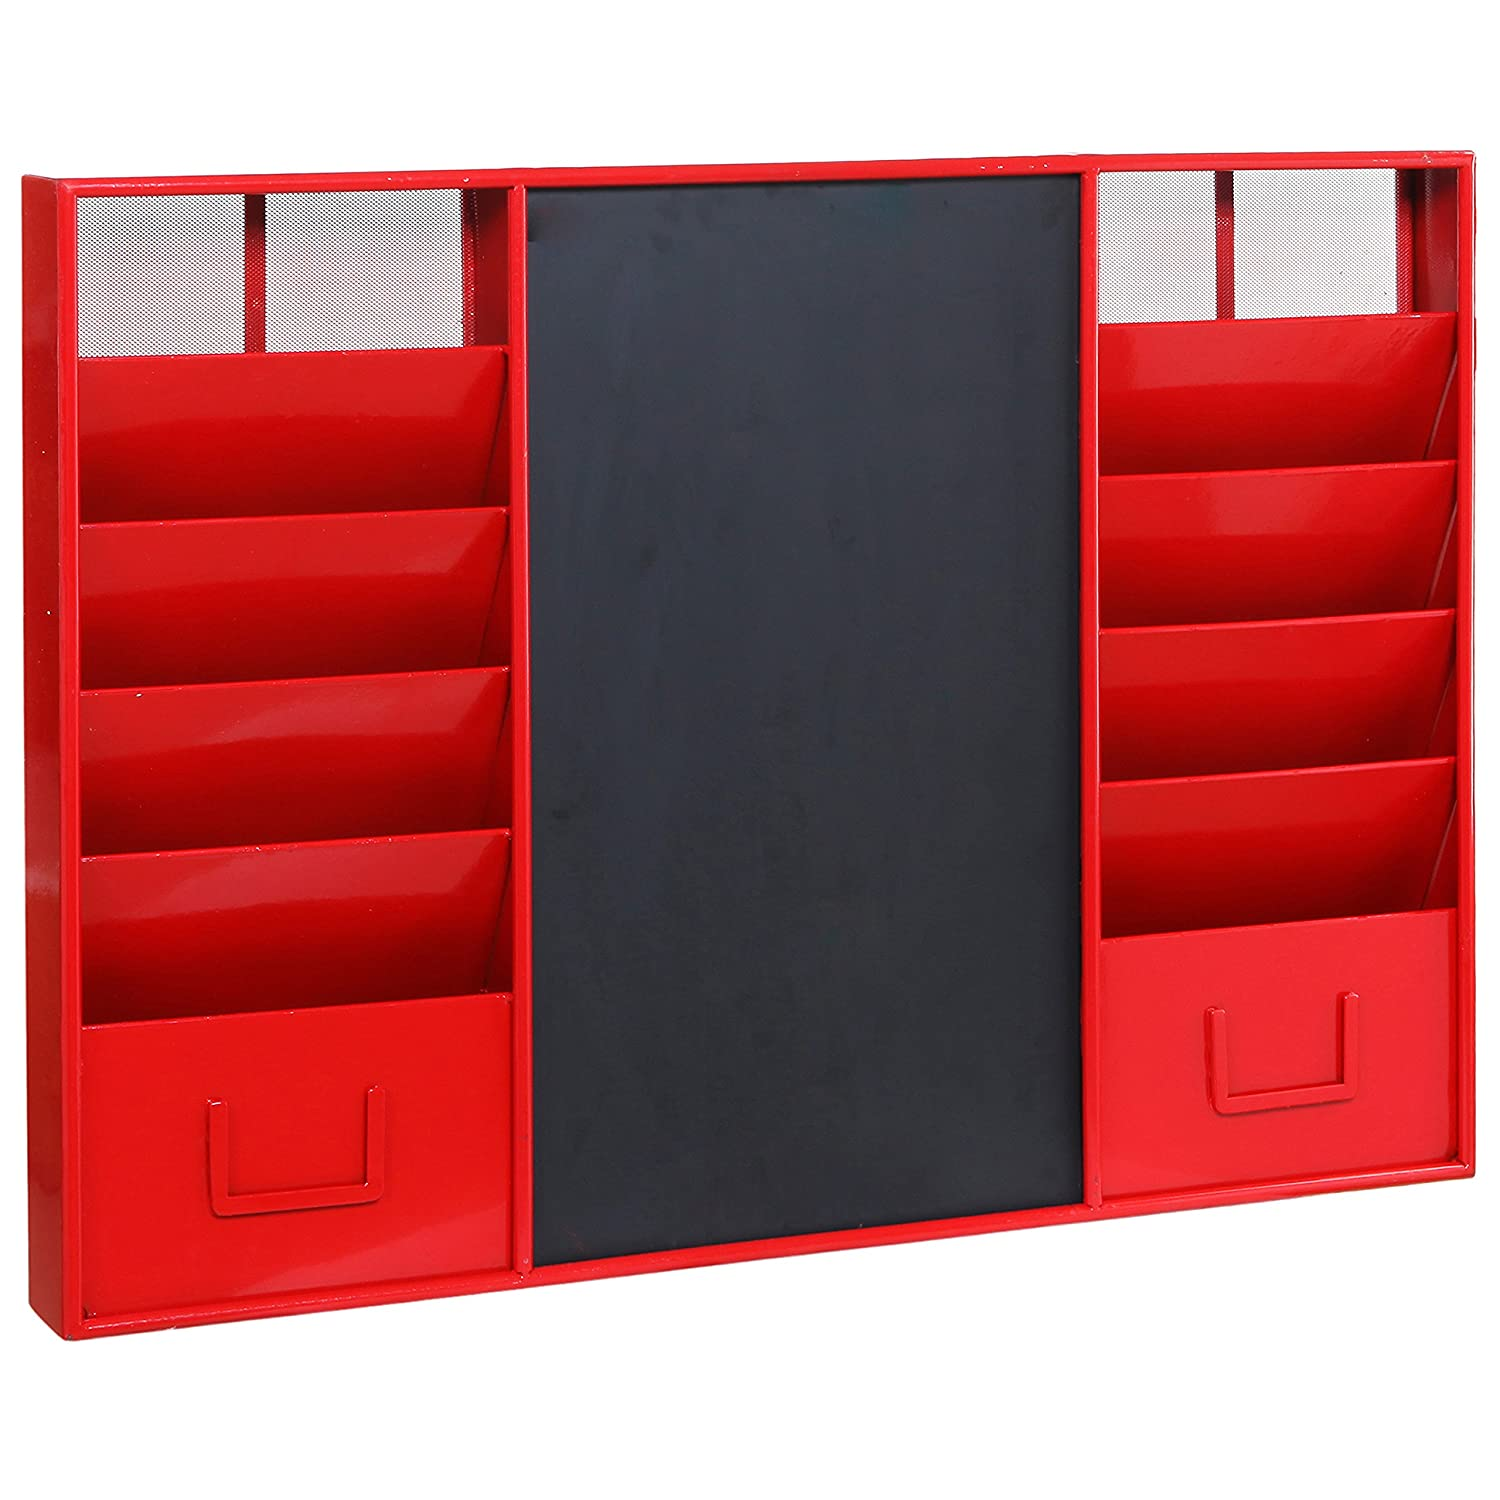 Superior Modern Wall Mounted Red Metal Memo Message Chalkboard / 10 Slot Document  Organizer U0026 Mail Sorter Rack: Amazon.co.uk: Office Products